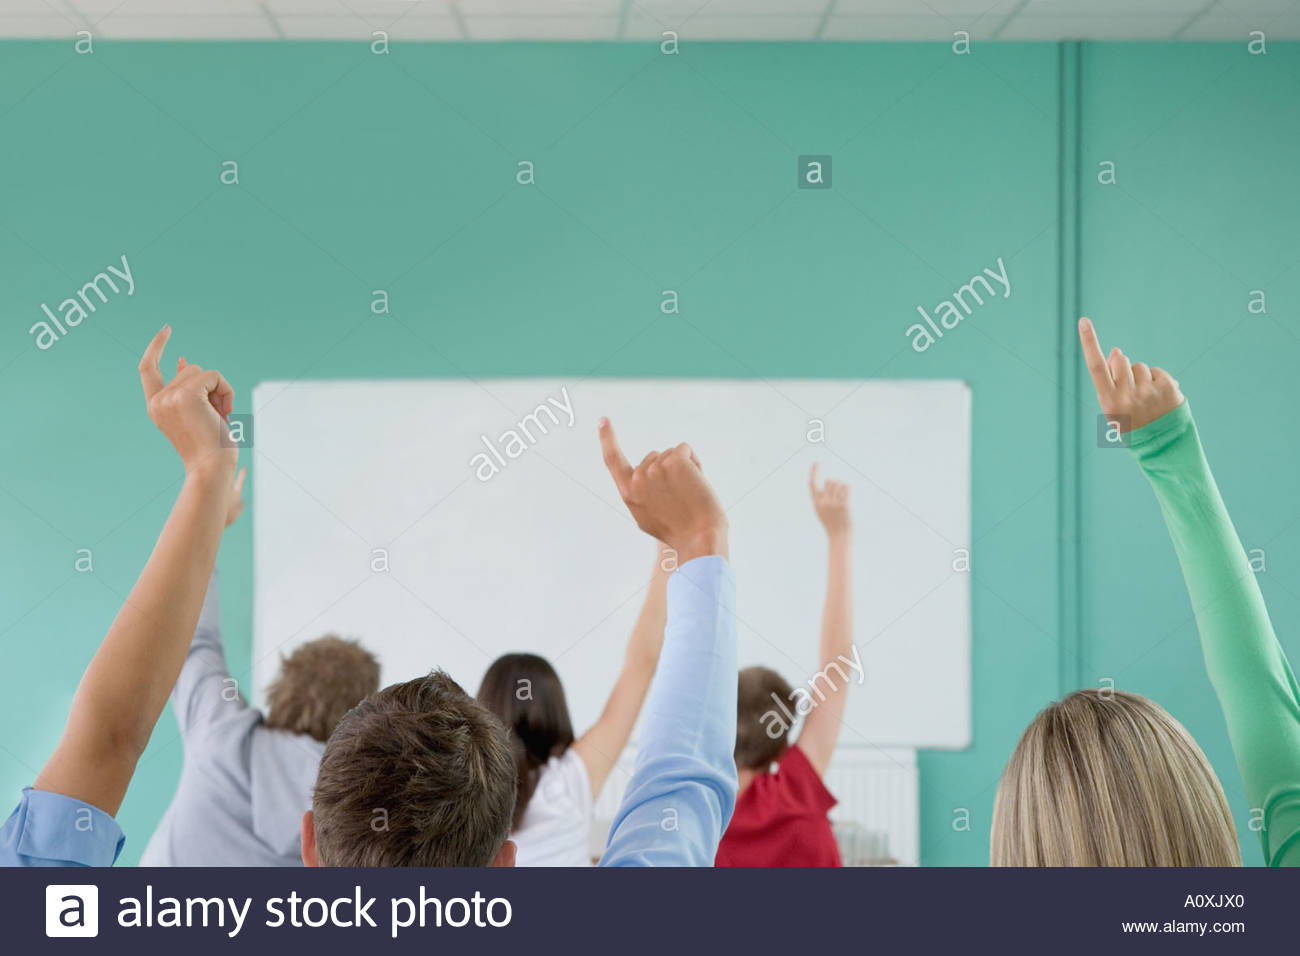 School students raising their hands - Stock Image